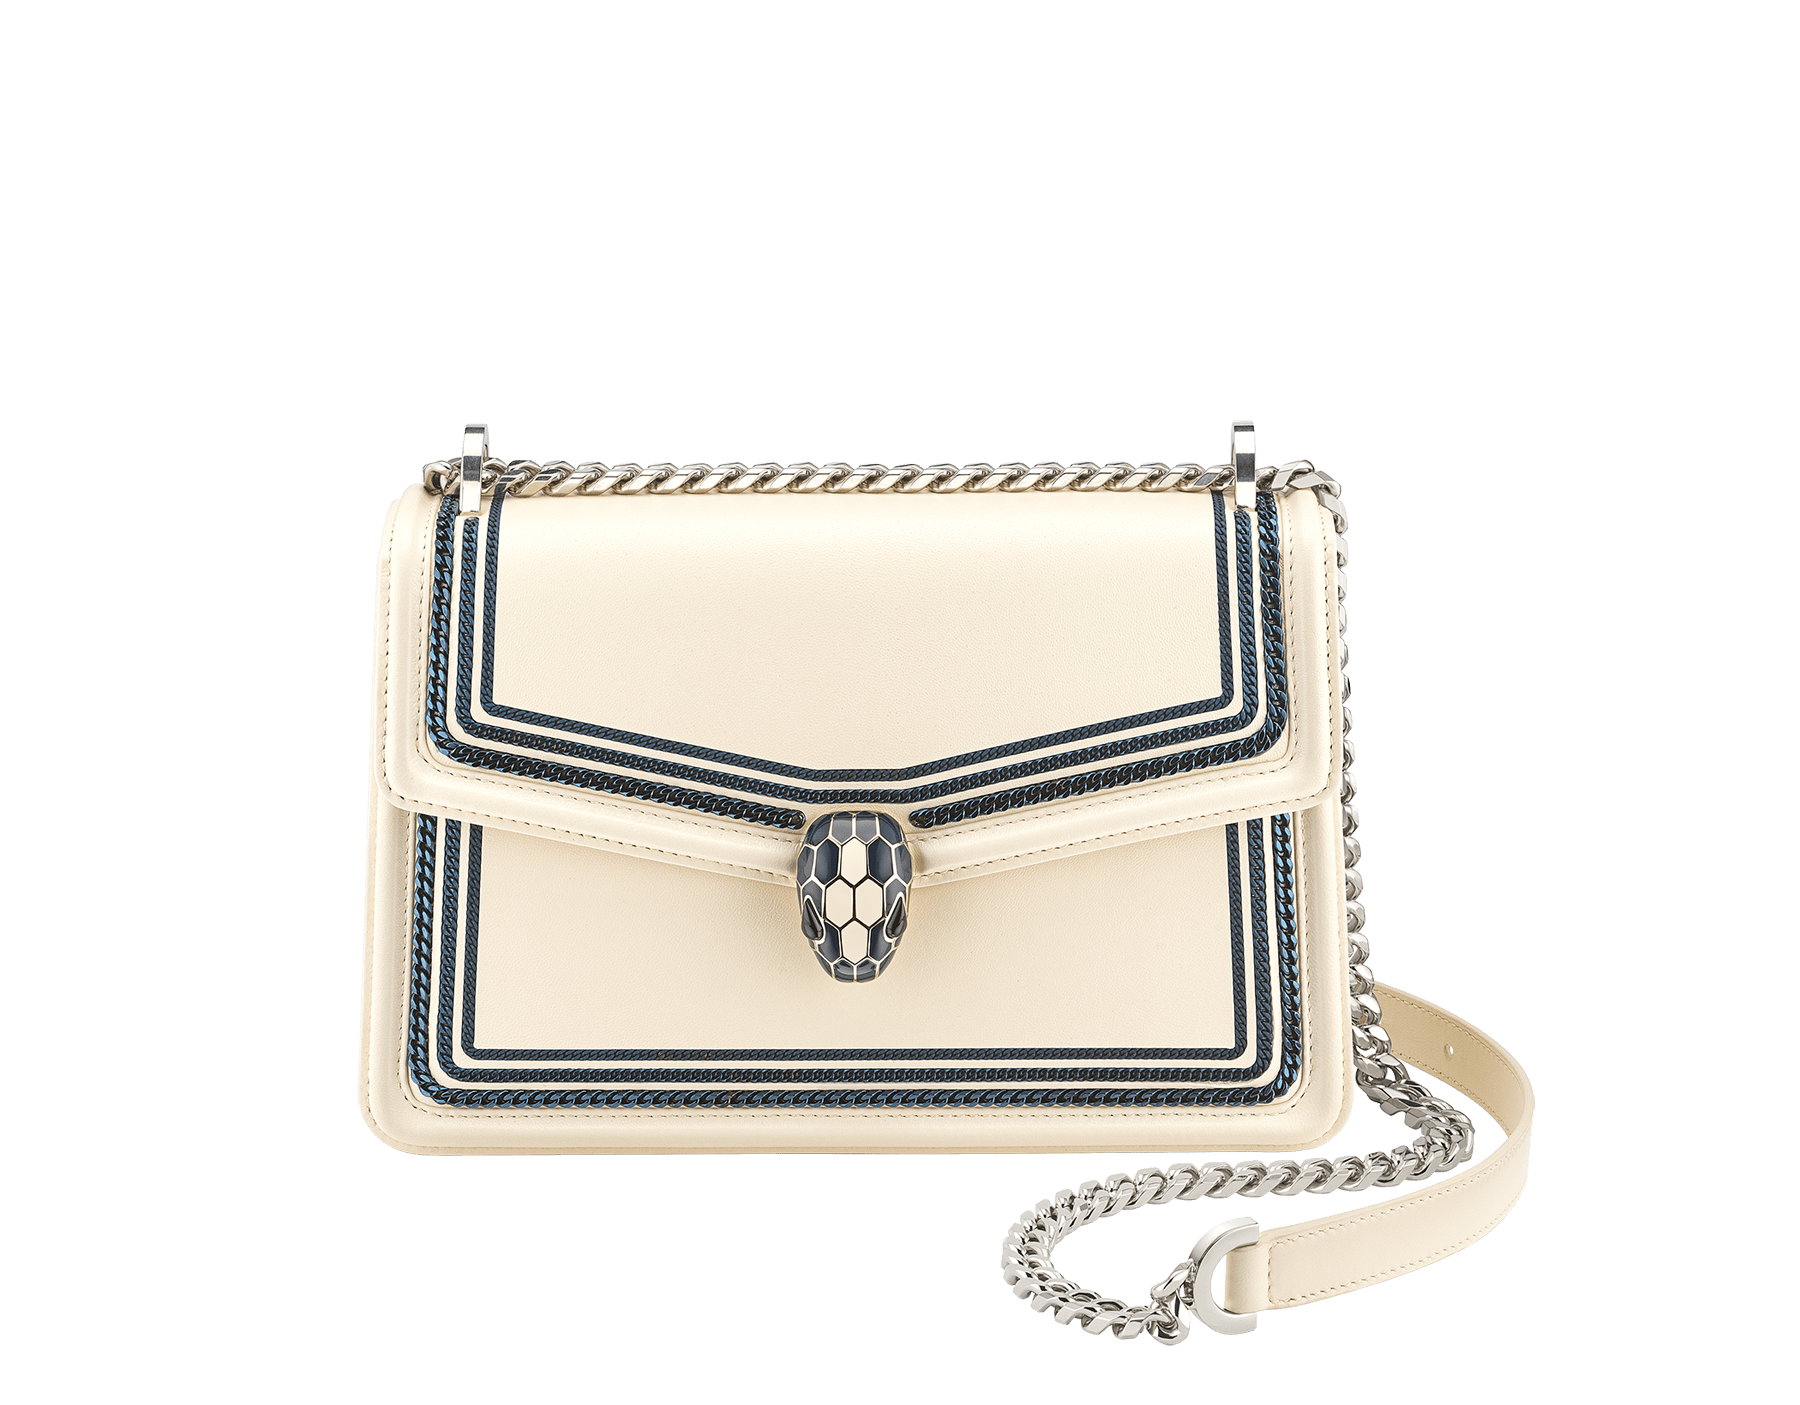 """""""Serpenti Diamond Blast"""" shoulder bag in Ivory Opal white smooth calf leather, featuring a Teal Topaz green 3-Maxi Chain motif, and an Aquamarine light blue nappa leather internal lining. Tempting snakehead closure in palladium-plated brass, embellished with Teal Topaz green and Ivory Opal white enamel, and black onyx eyes. 291173 image 1"""